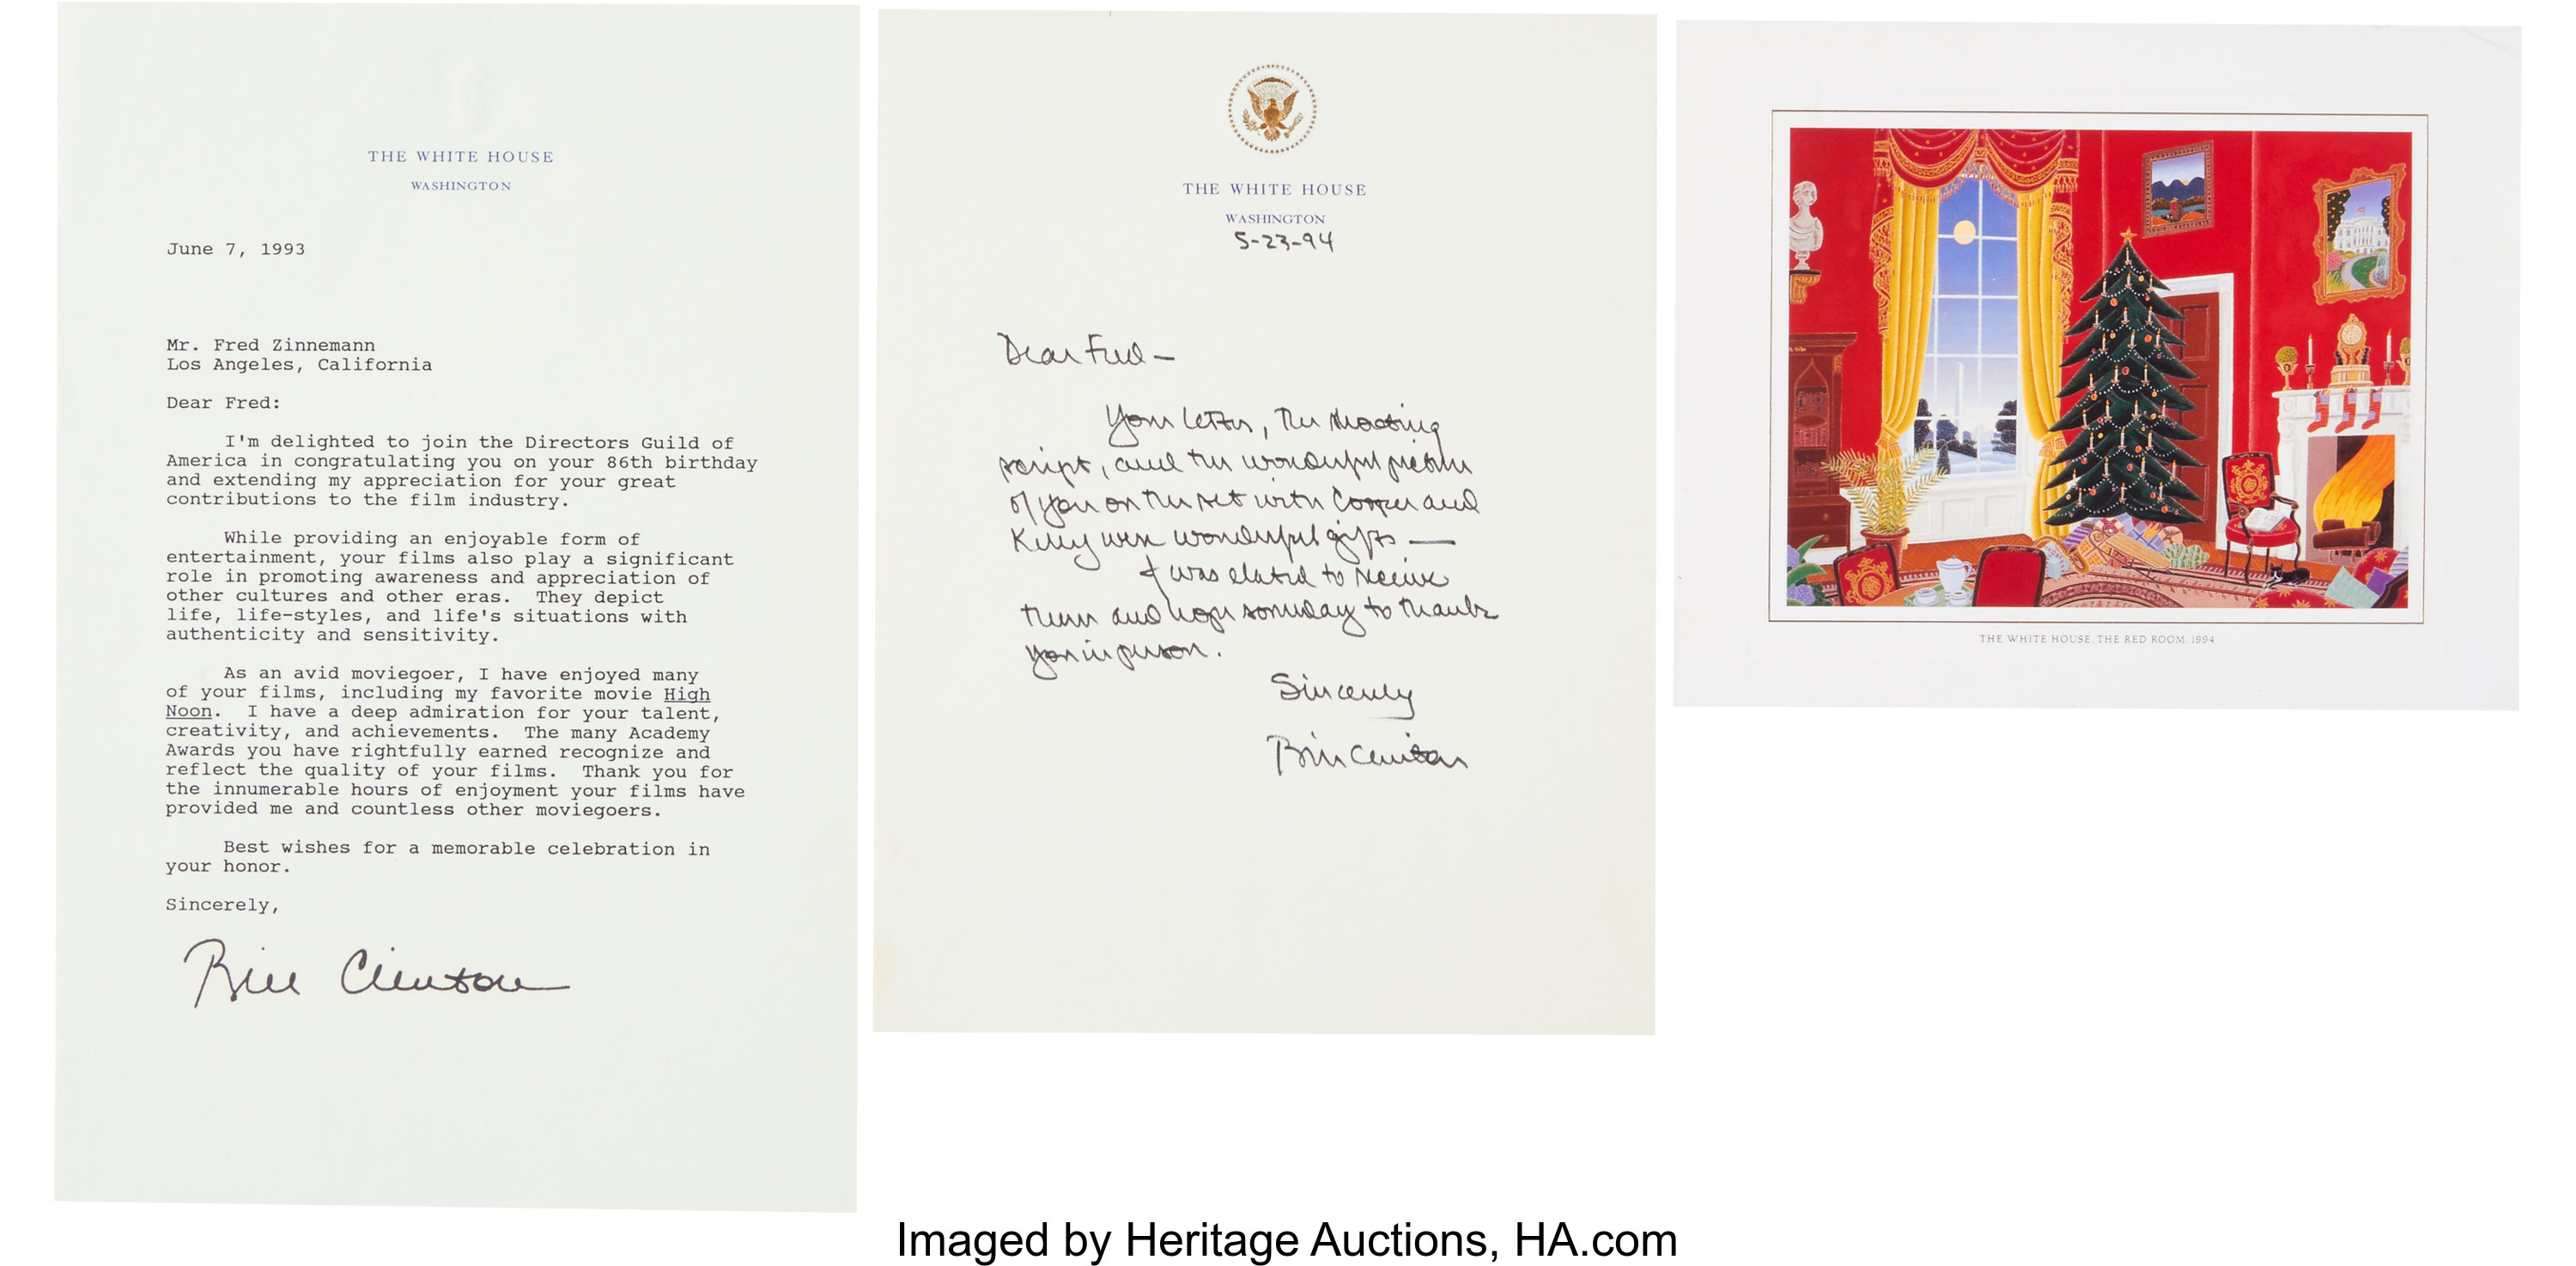 Signature In A Letter from dyn1.heritagestatic.com